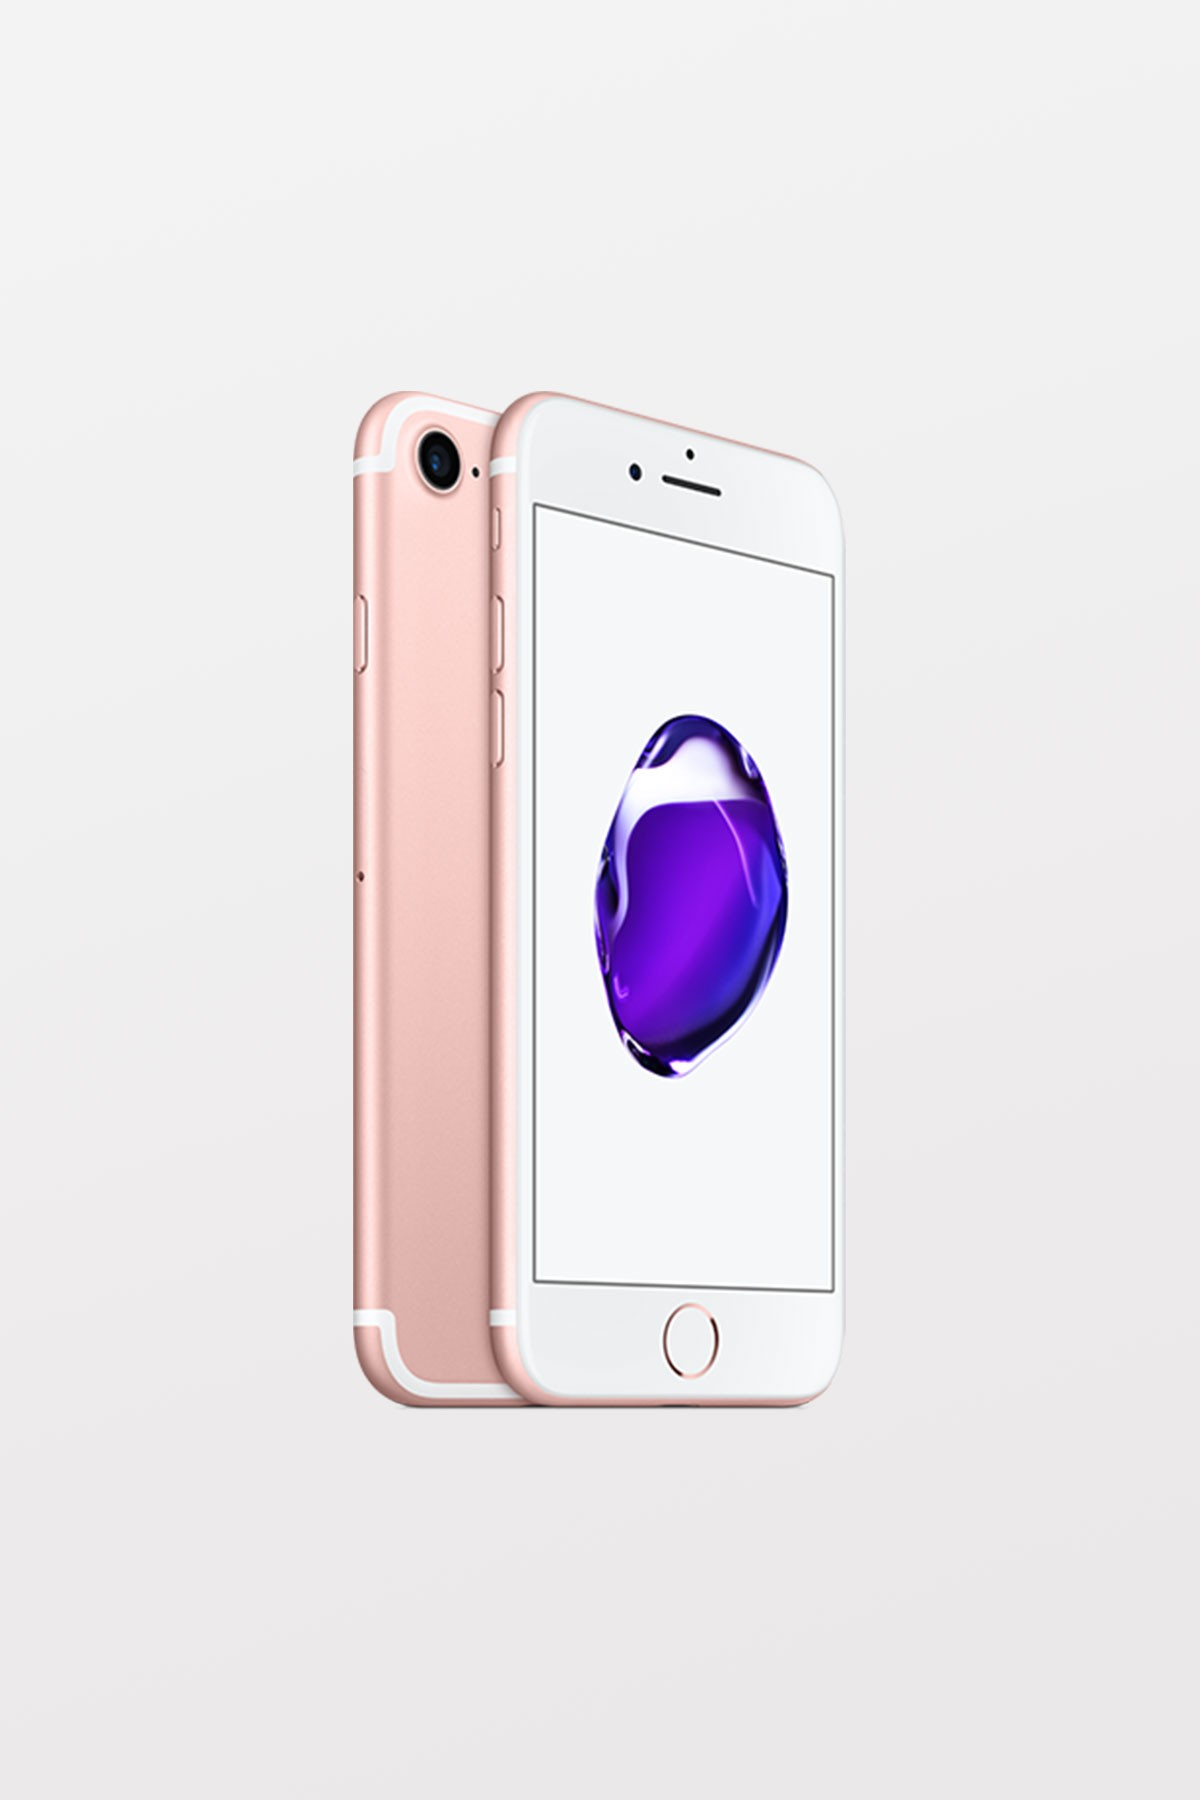 Apple iPhone 7 128GB - Rose Gold - Refurbished